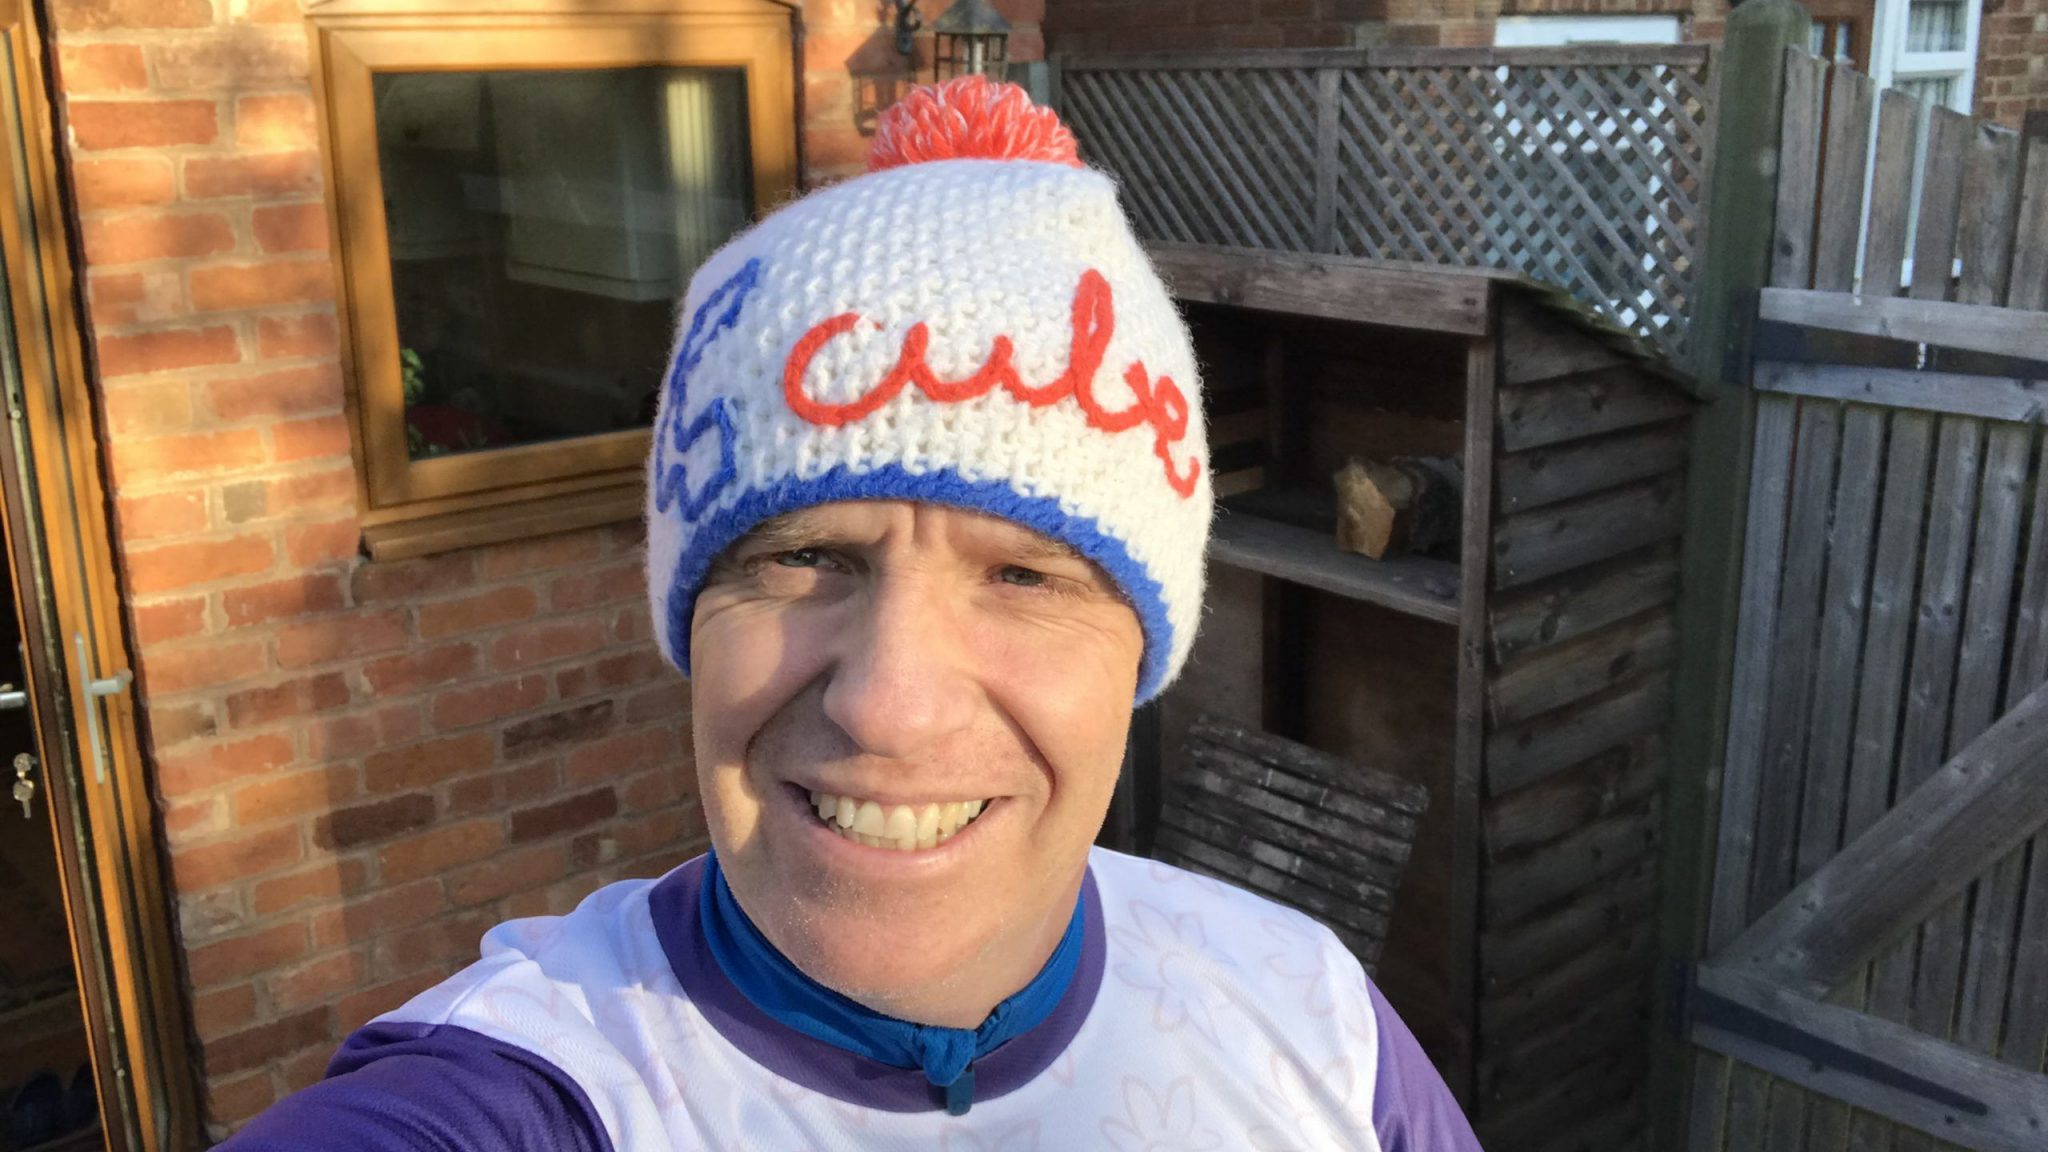 Neil Emery embarks on a new challenge, raising money for St Mary's Hospice TrilbyTV